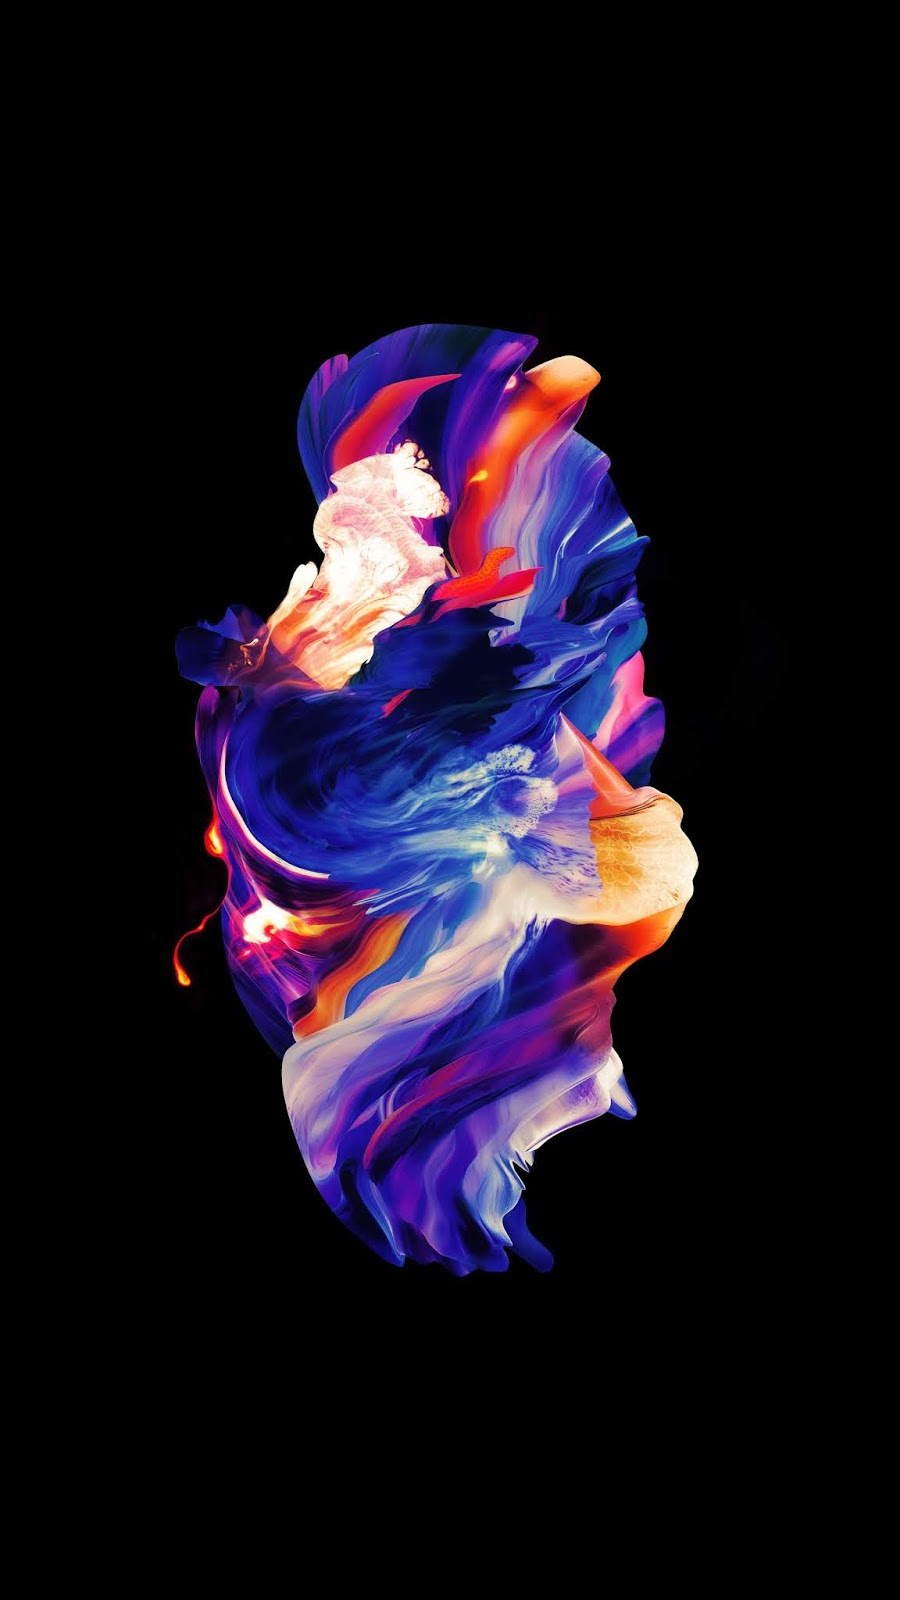 Iphone X Wallpapers Hd 4k